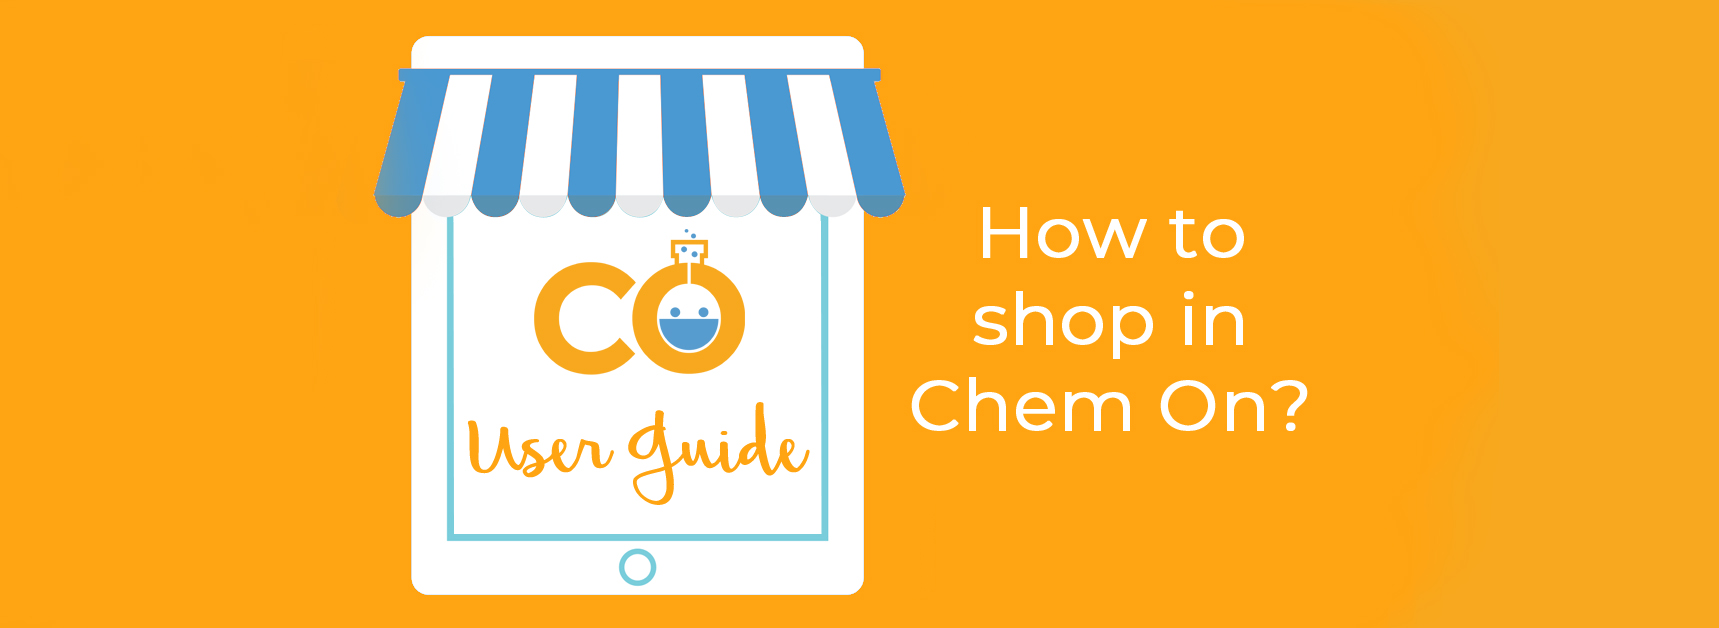 How to shop in Chem On?